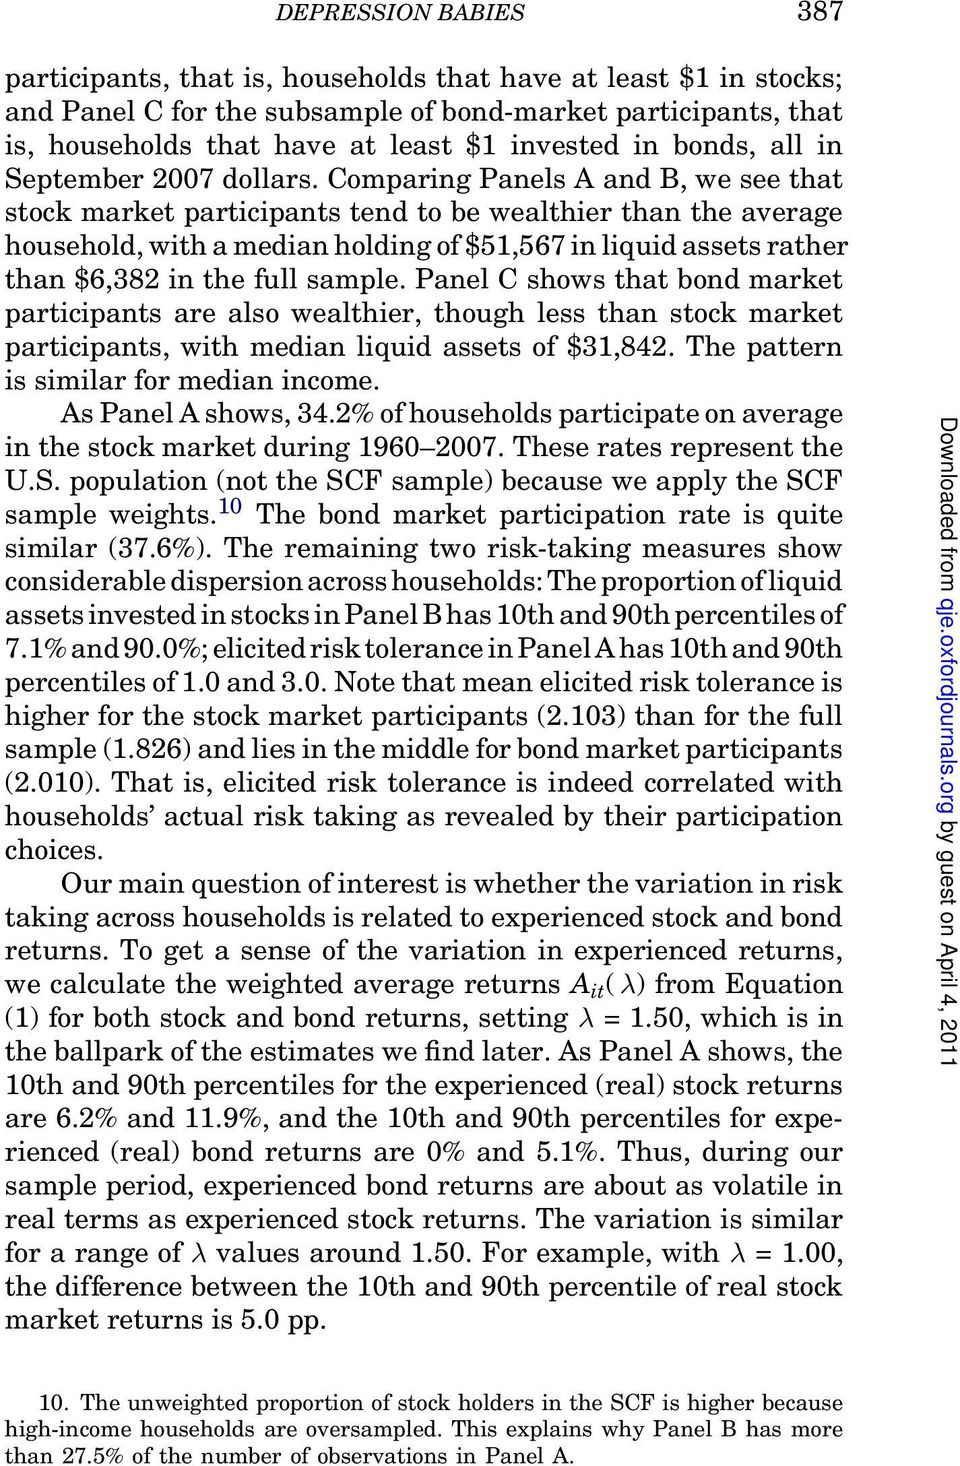 Comparing Panels A and B, we see that stock market participants tend to be wealthier than the average household, with a median holding of $51,567 in liquidassets rather than $6,382 in the full sample.